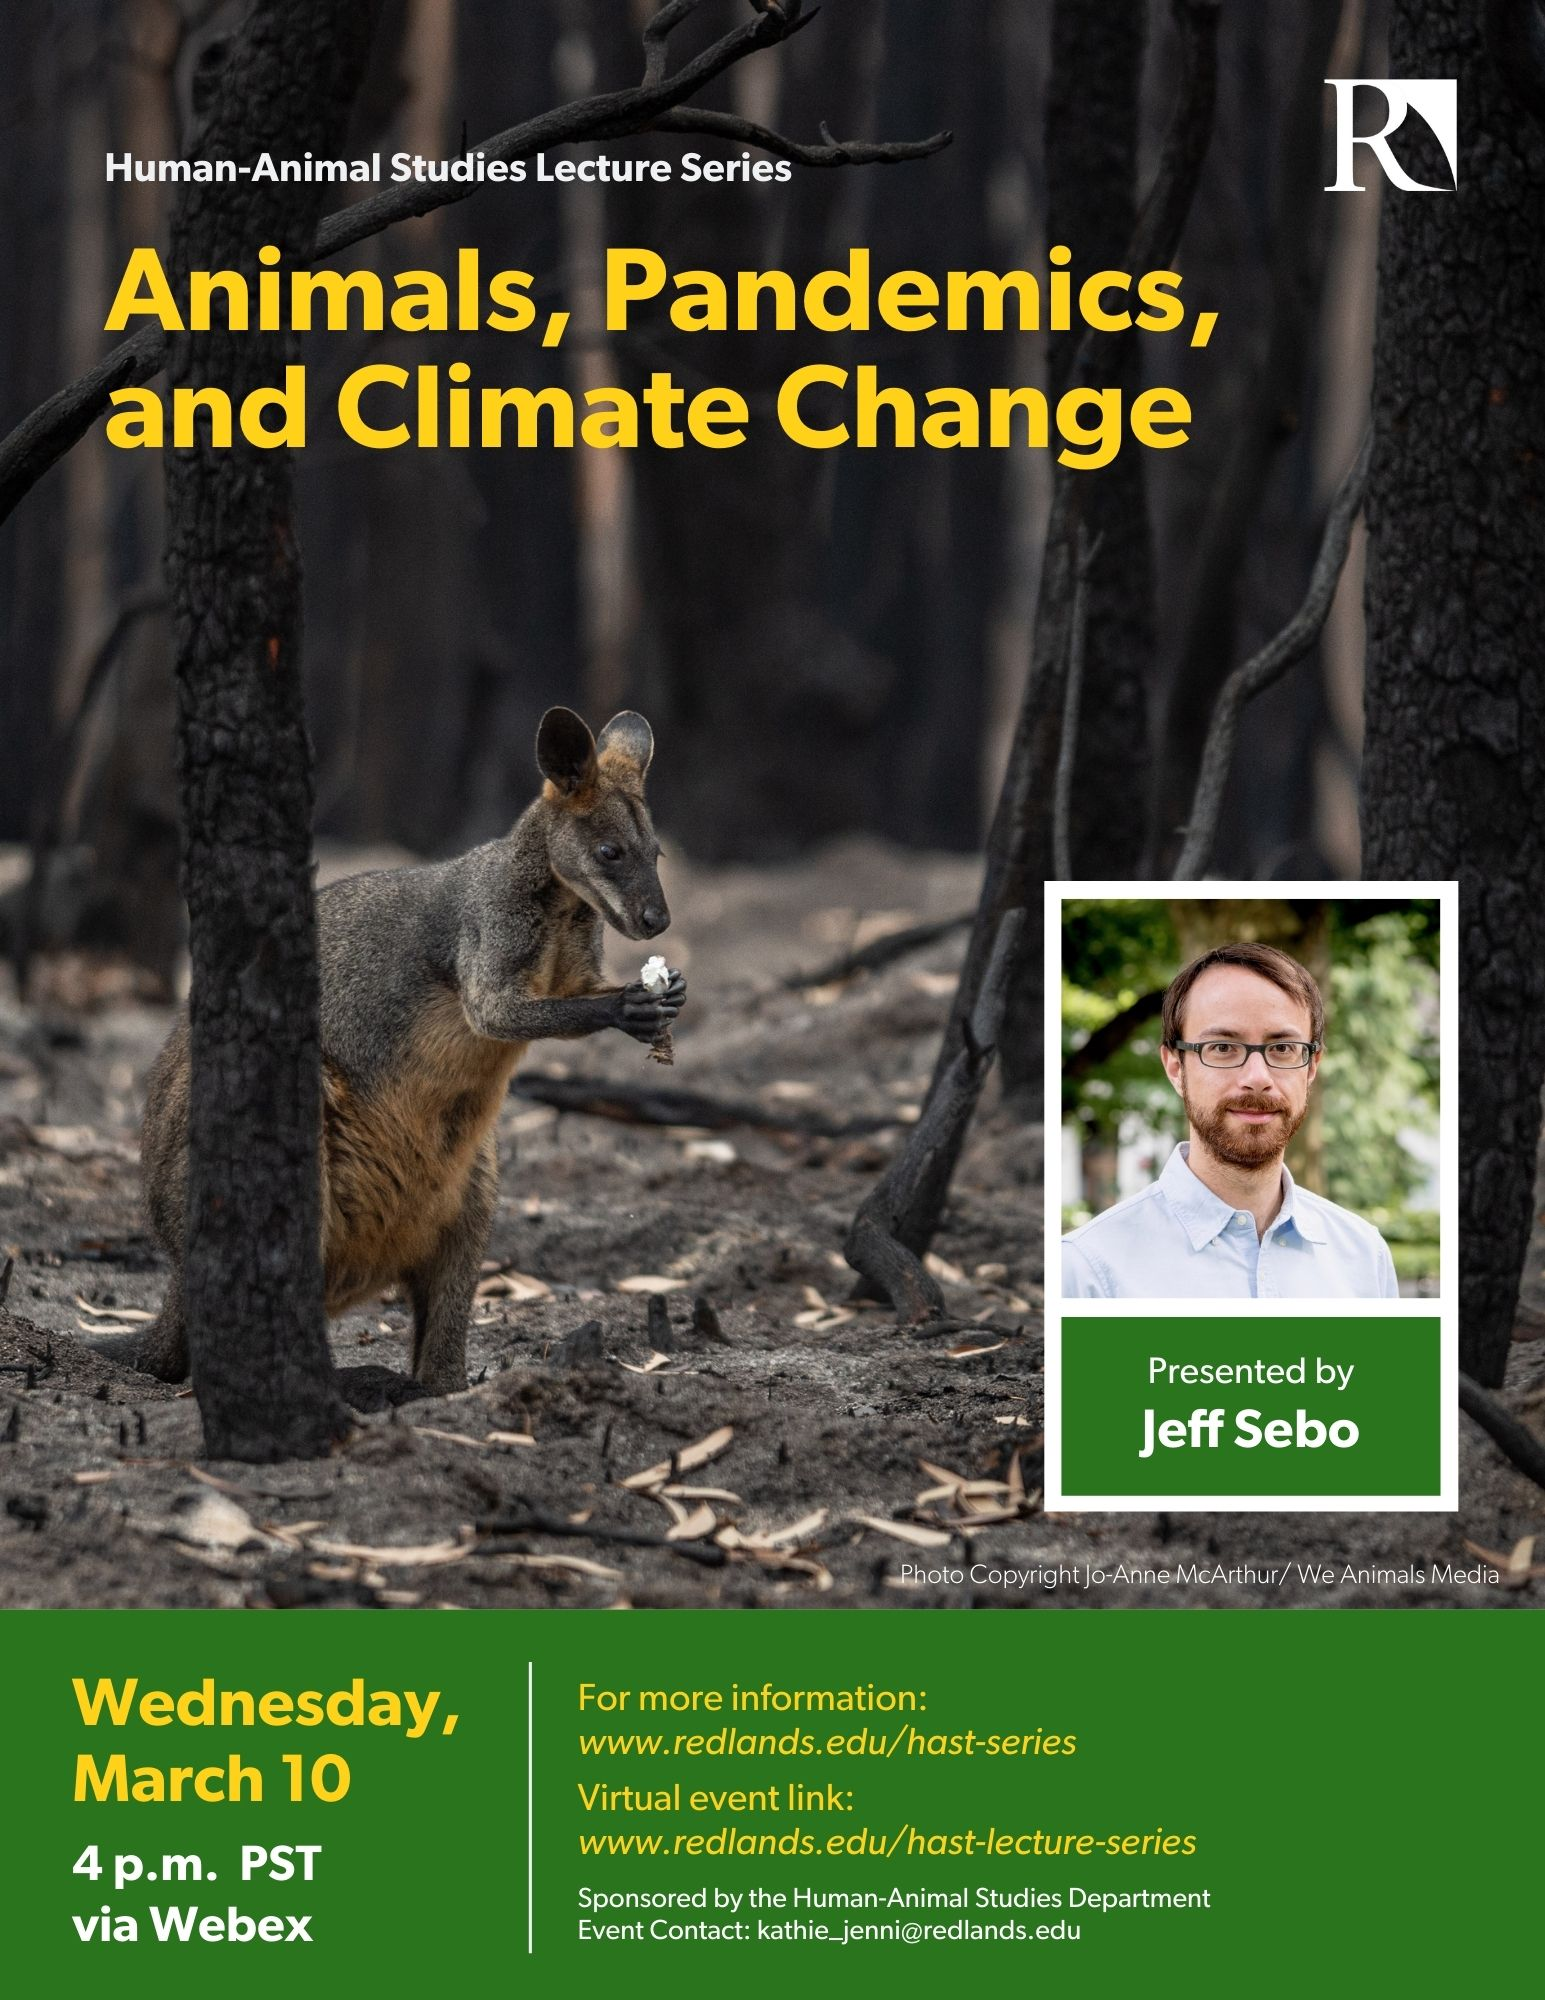 Animals, Pandemics and Climate Change Lecture Poster